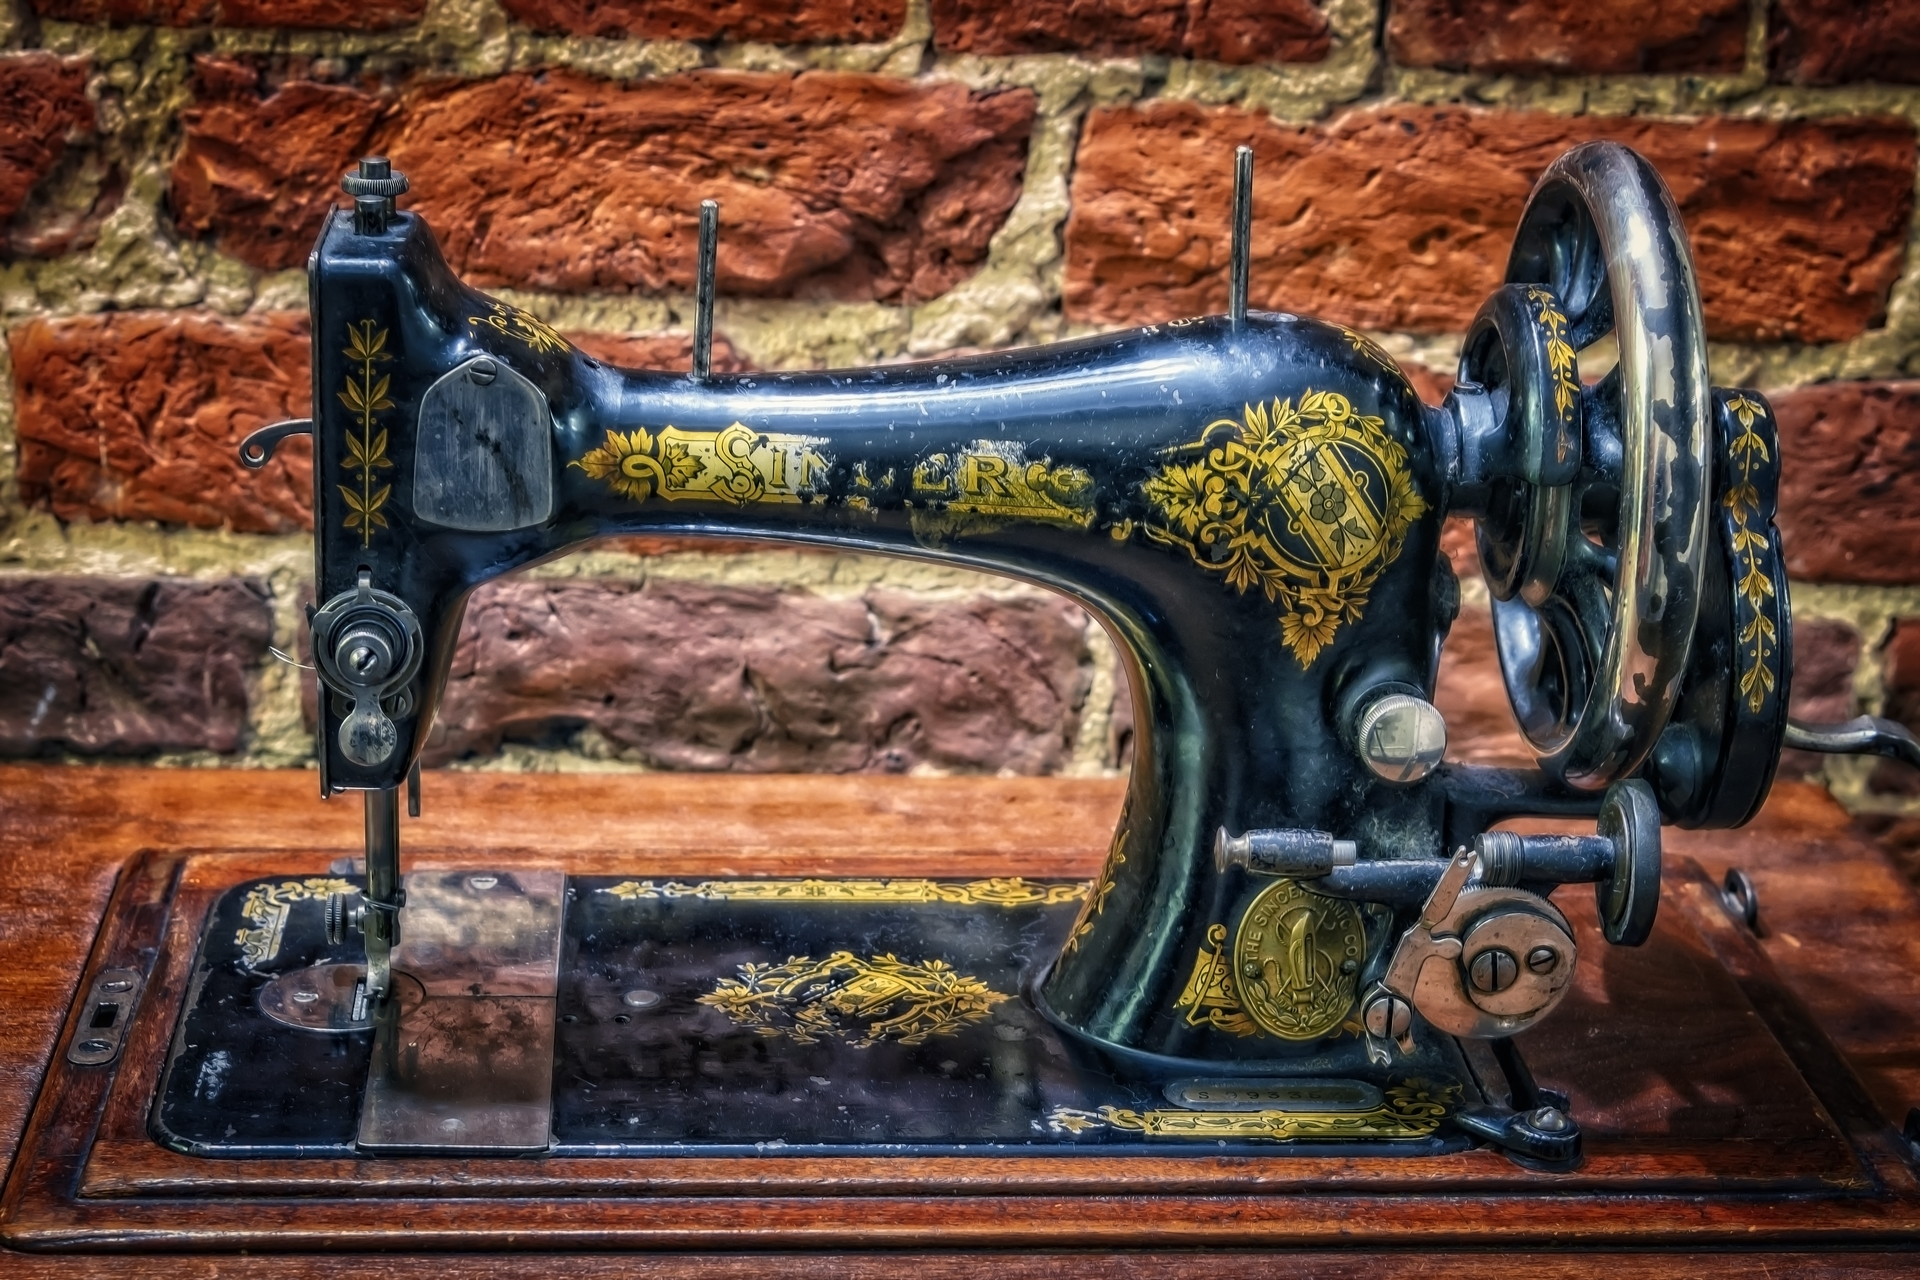 Singer sewing machines: ageing starlet (or outright scam ...